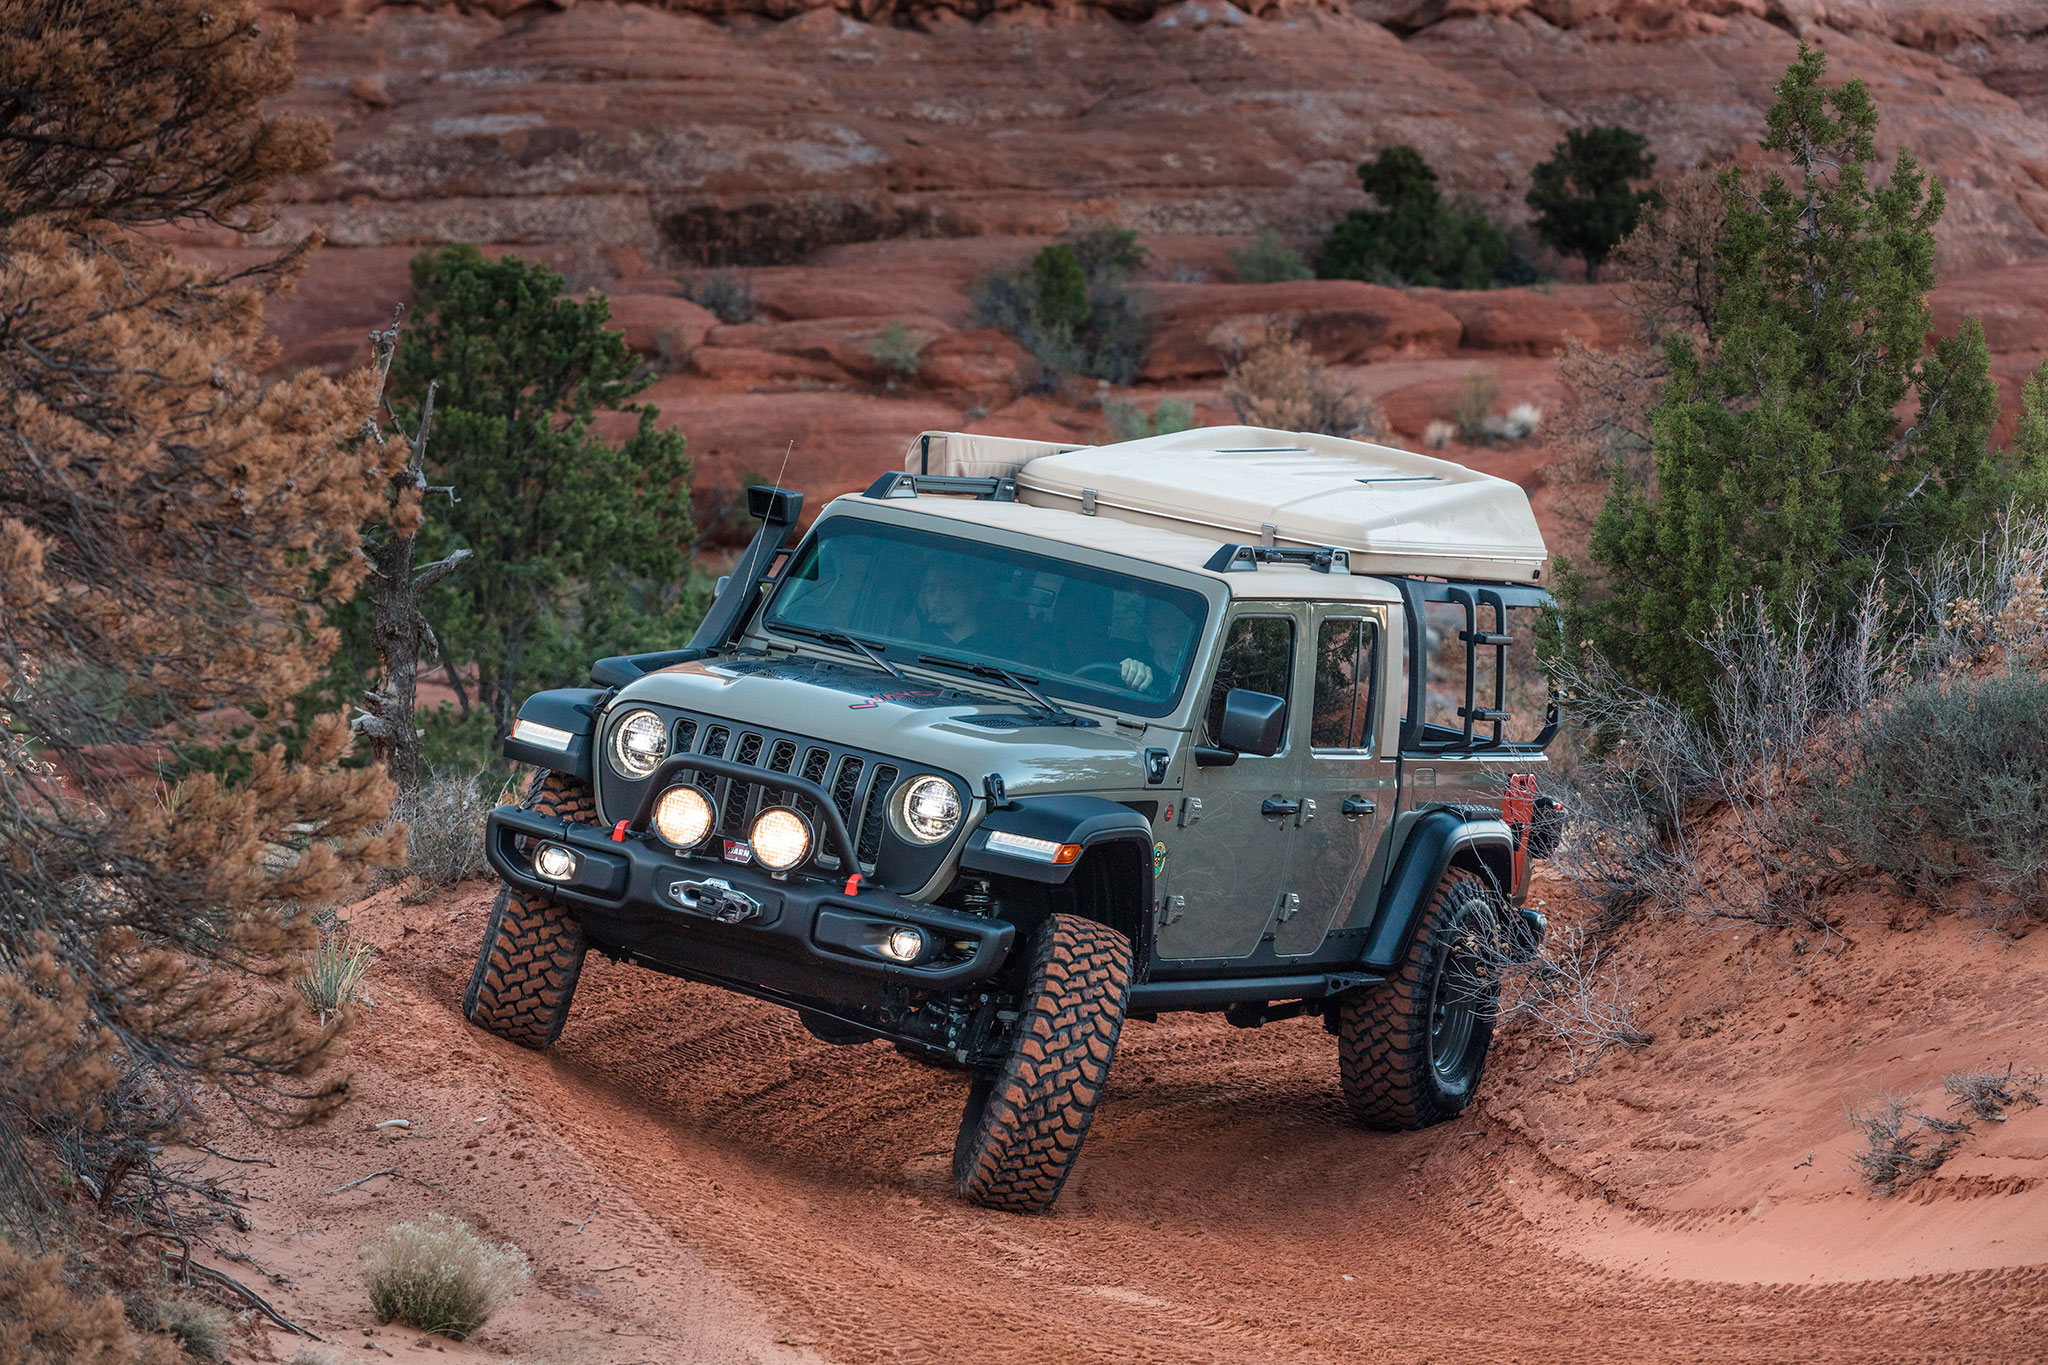 2019 Jeep Gladiator Wayout dans son terrain de jeu favori - Moab Easter Jeep Safari.